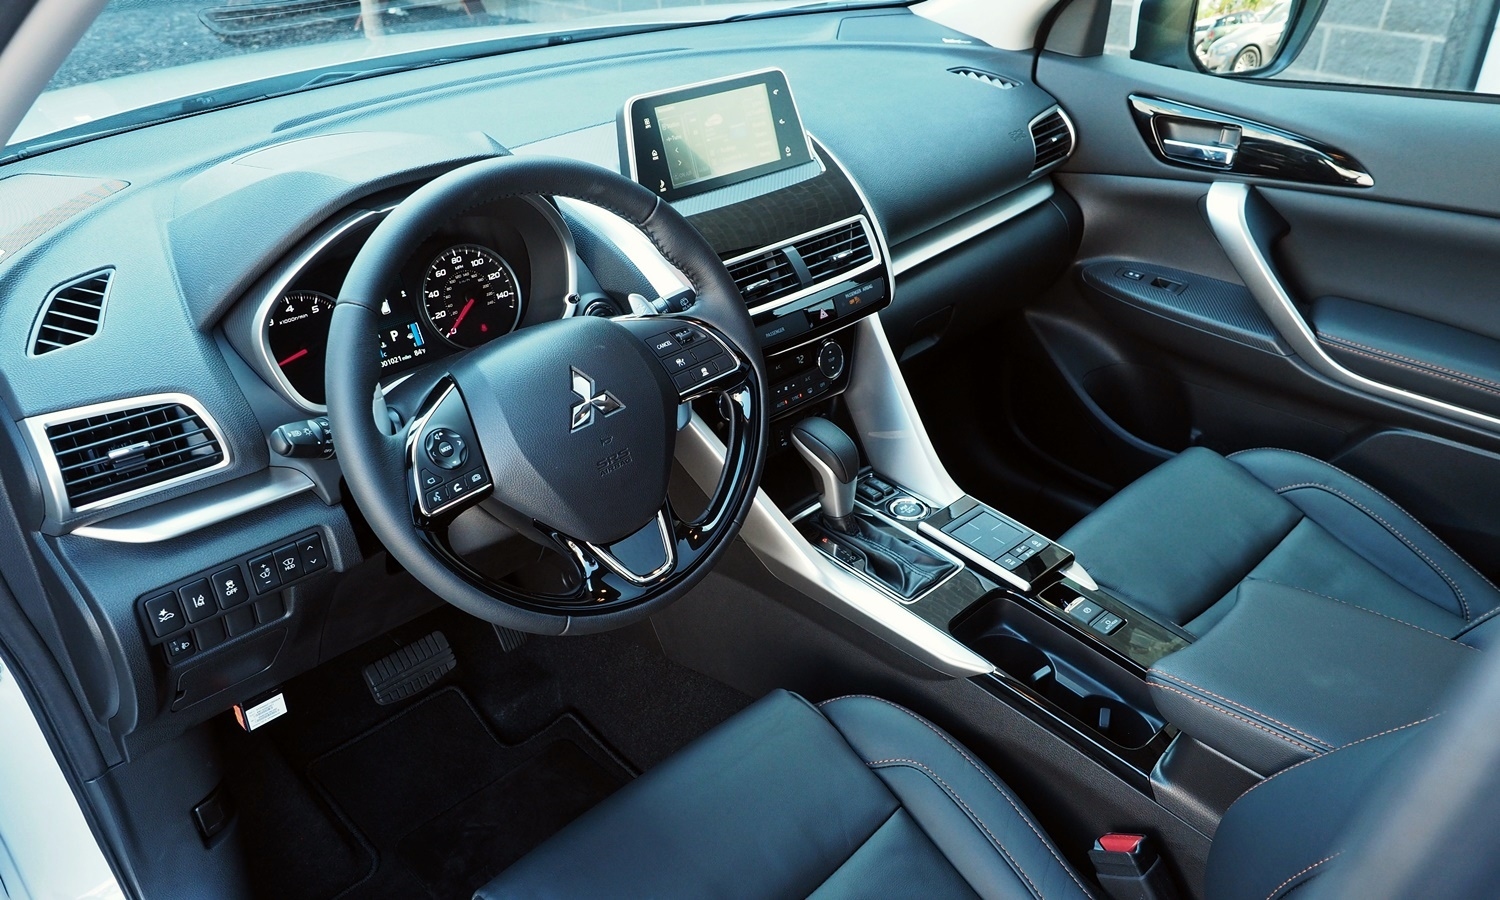 Mitsubishi Eclipse Cross Photos: 2018 Mitsubishi Eclipse Cross interior